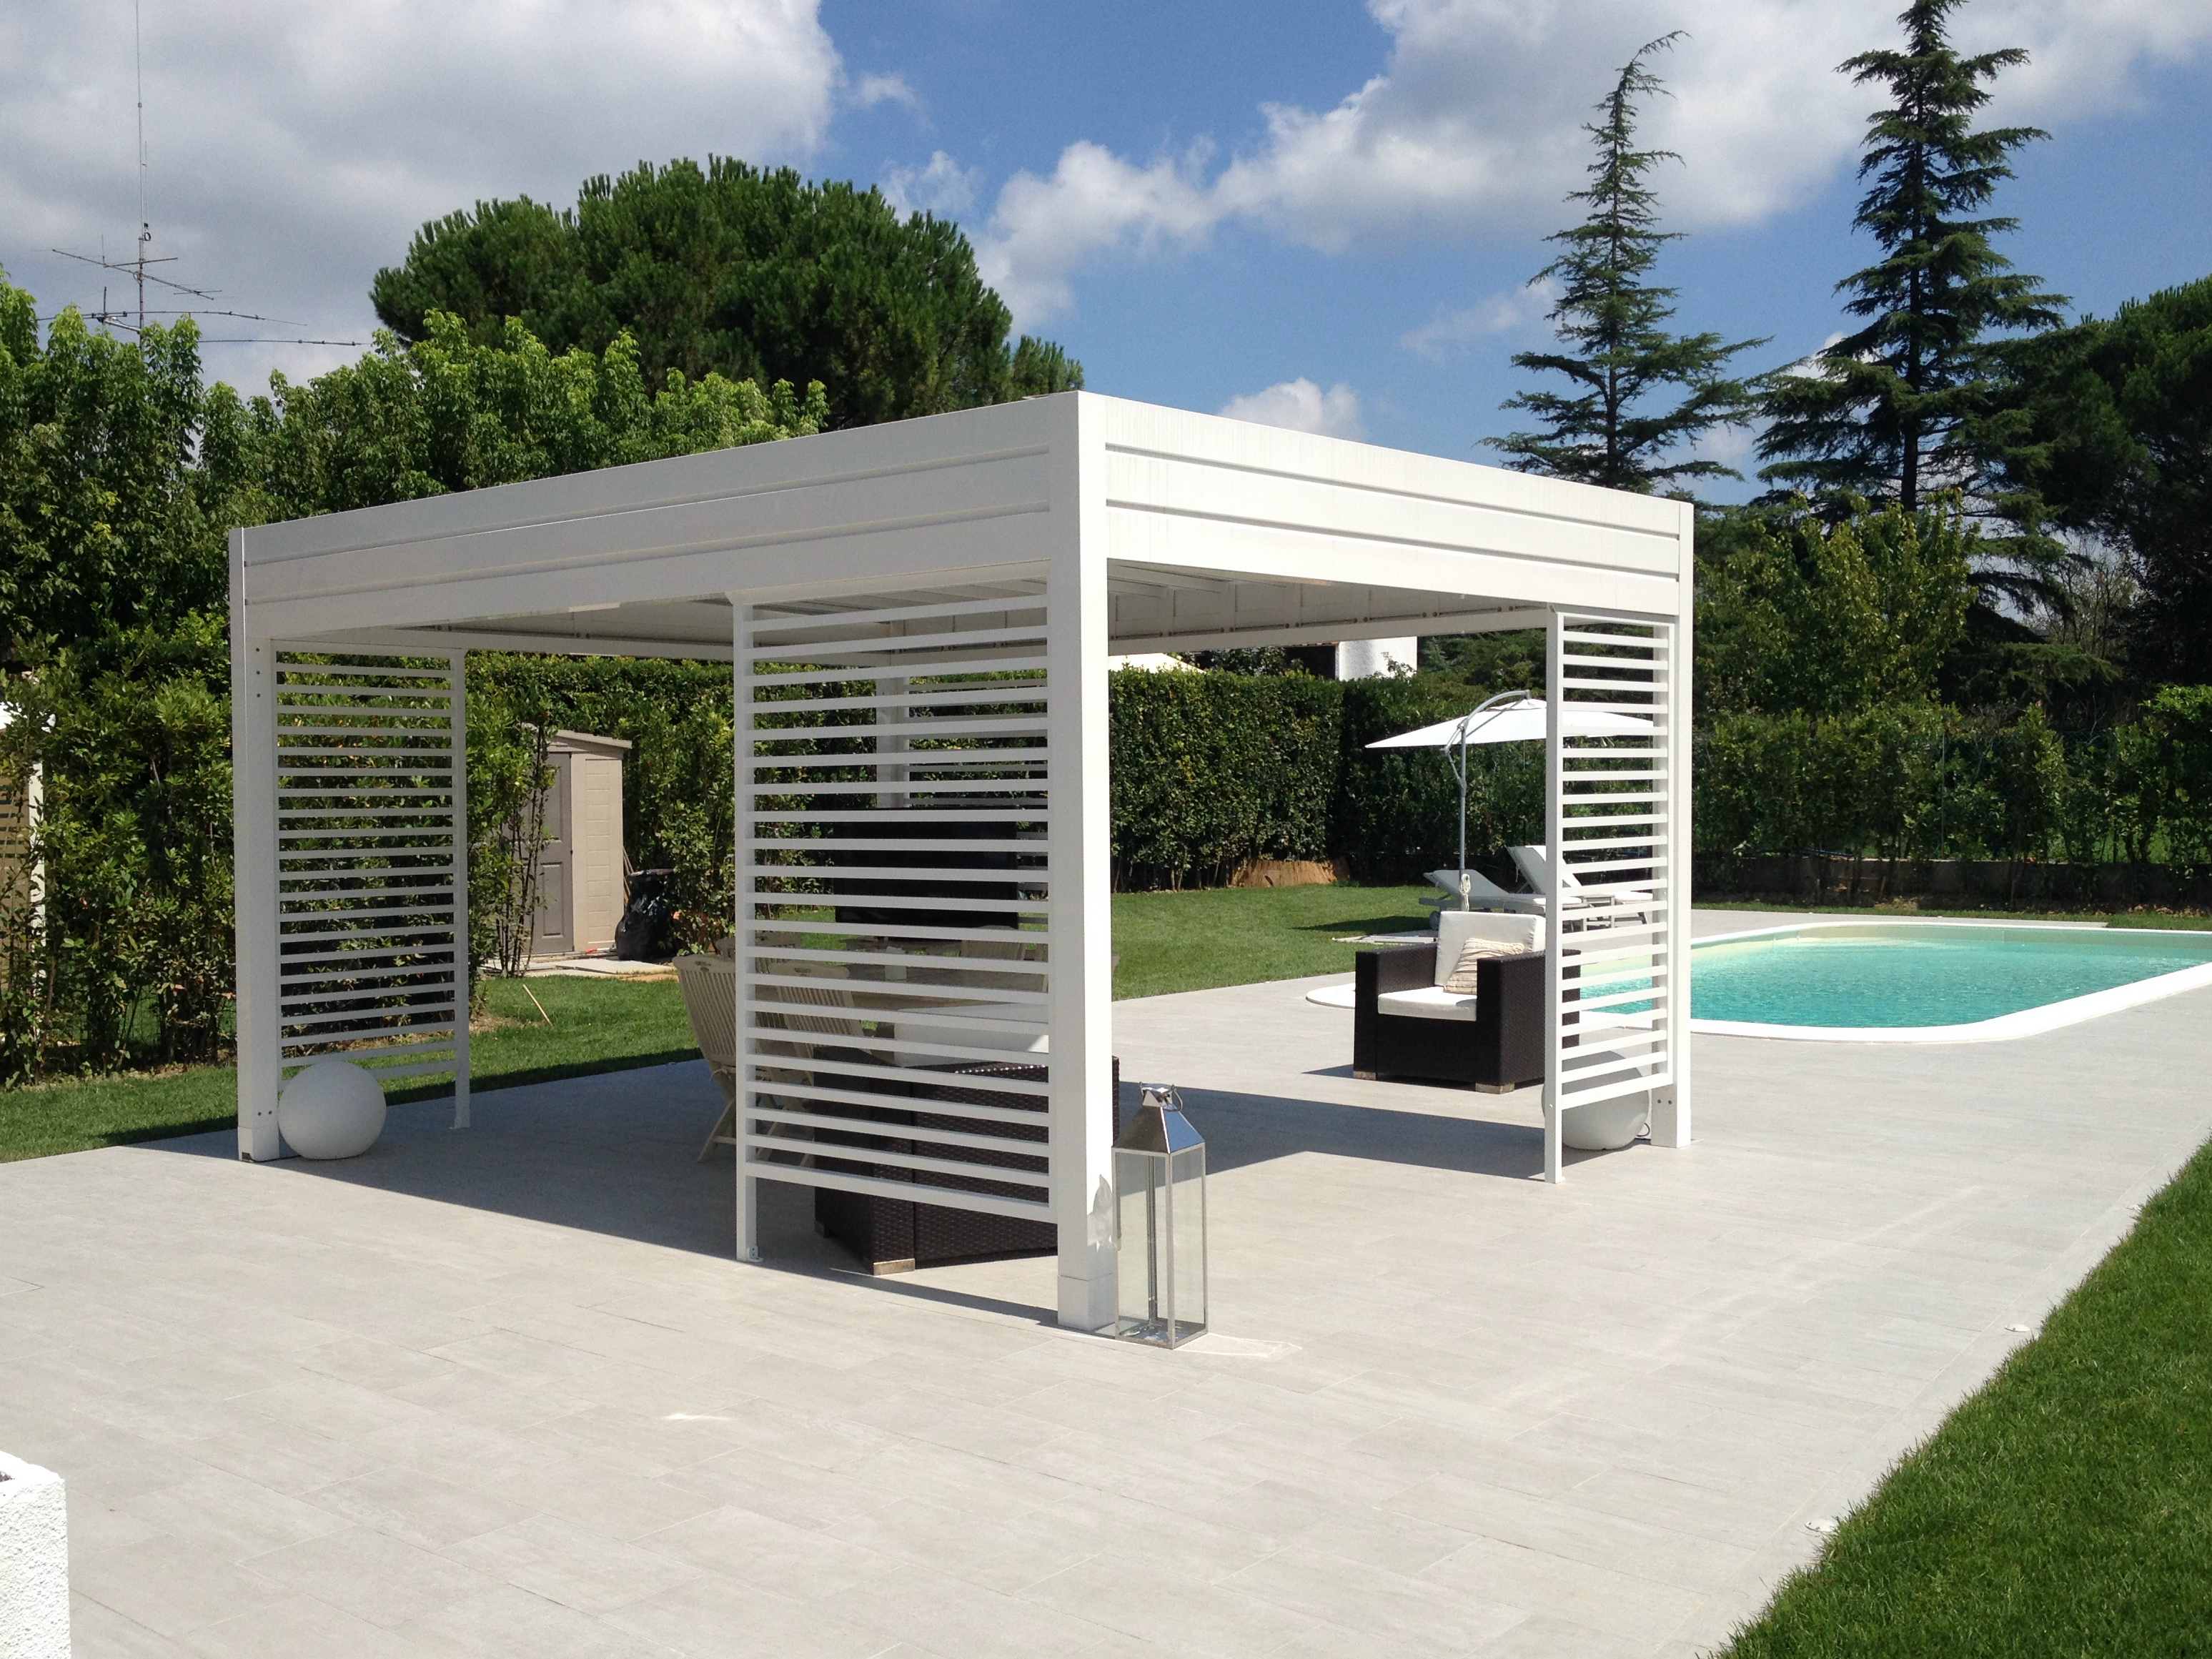 i1 gazebo gennius pergolas collection by ke outdoor design. Black Bedroom Furniture Sets. Home Design Ideas